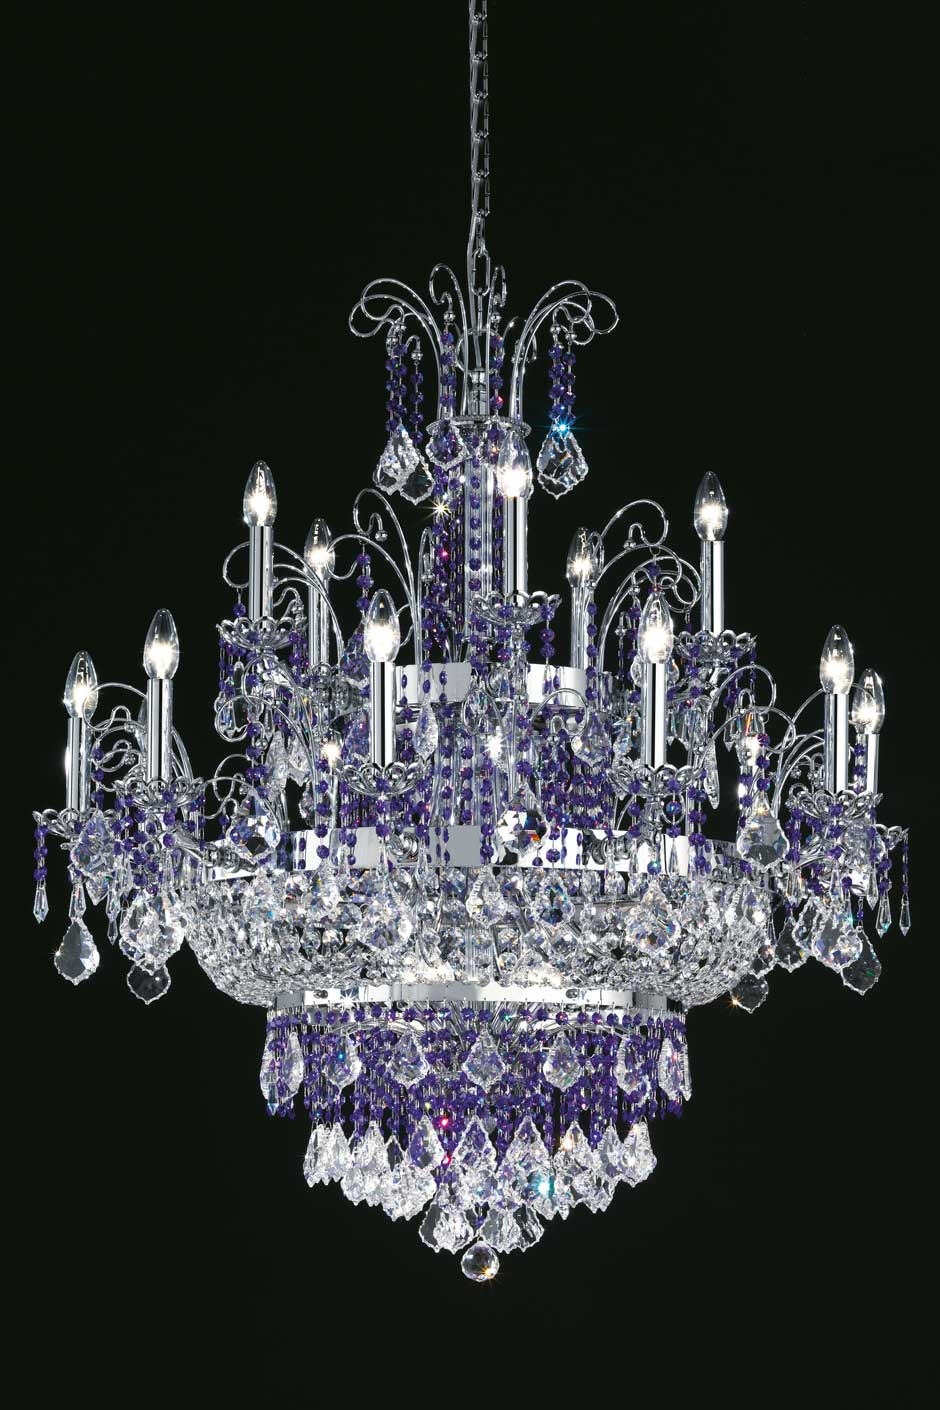 Large 15-light chandelier in clear crystal and polished stainless steel. Masiero.